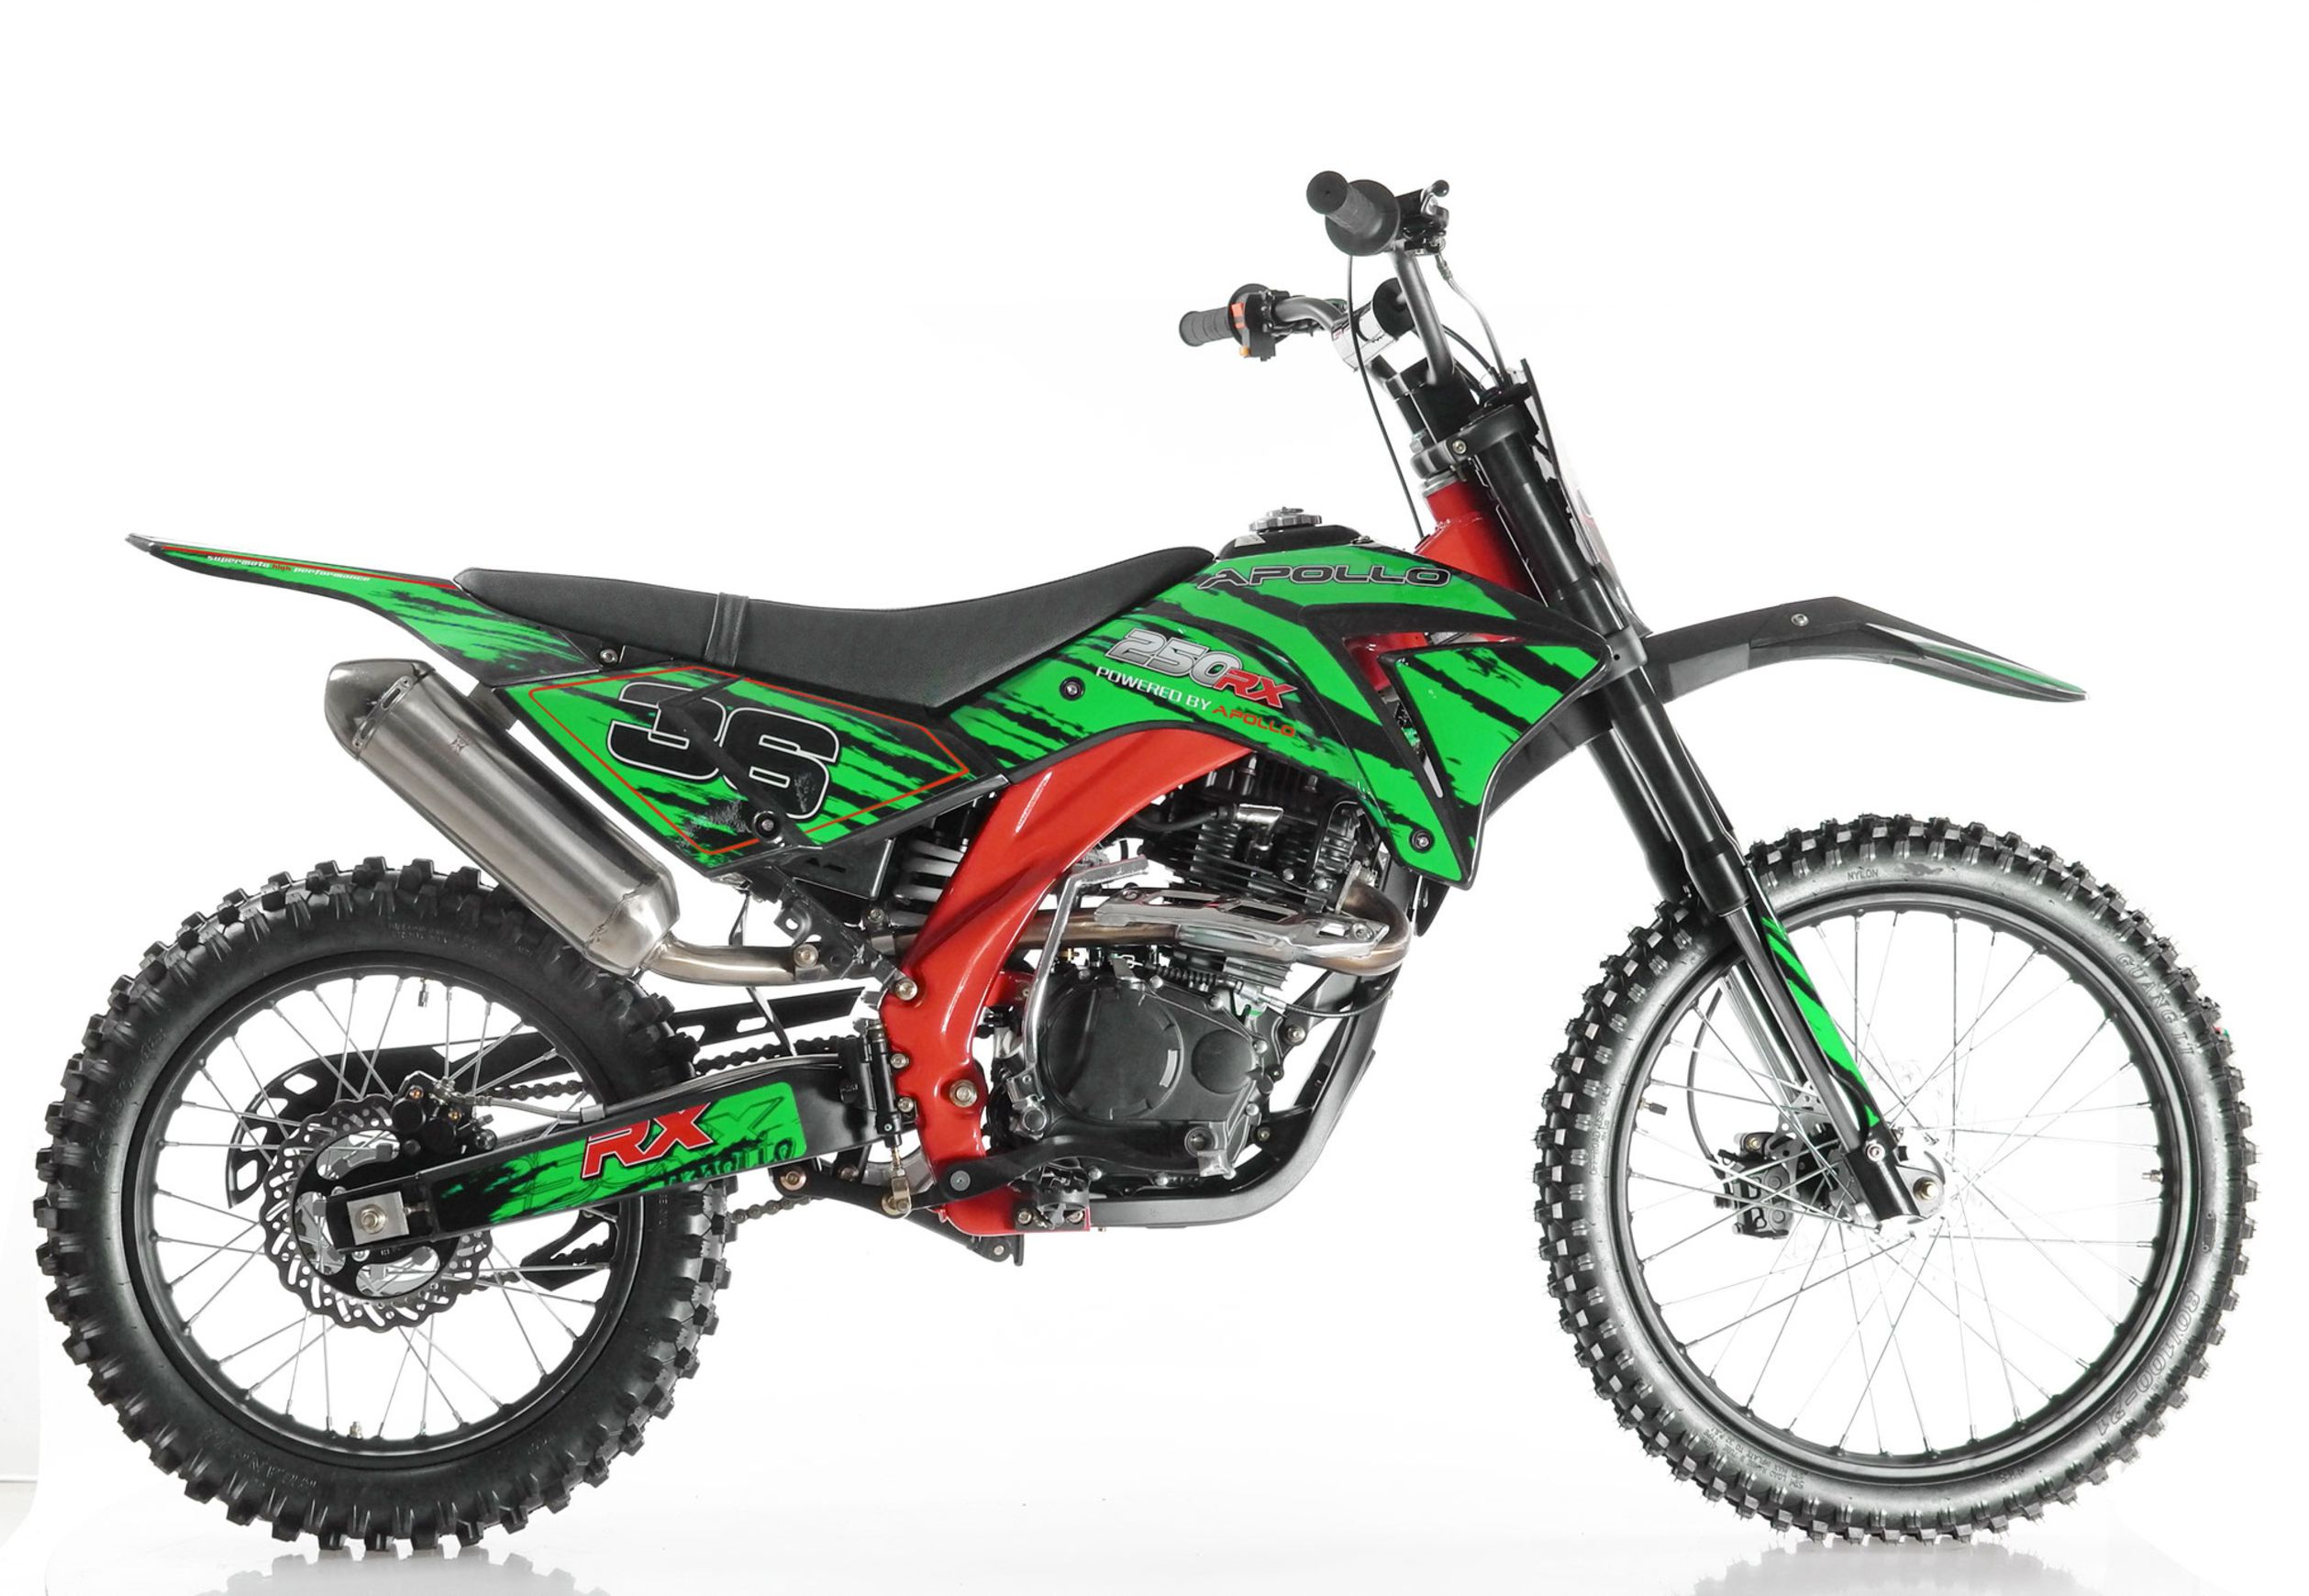 Affordable Dirt Bike New Dirt Bikes Dirt Bikes For Sale Dirt Bikes